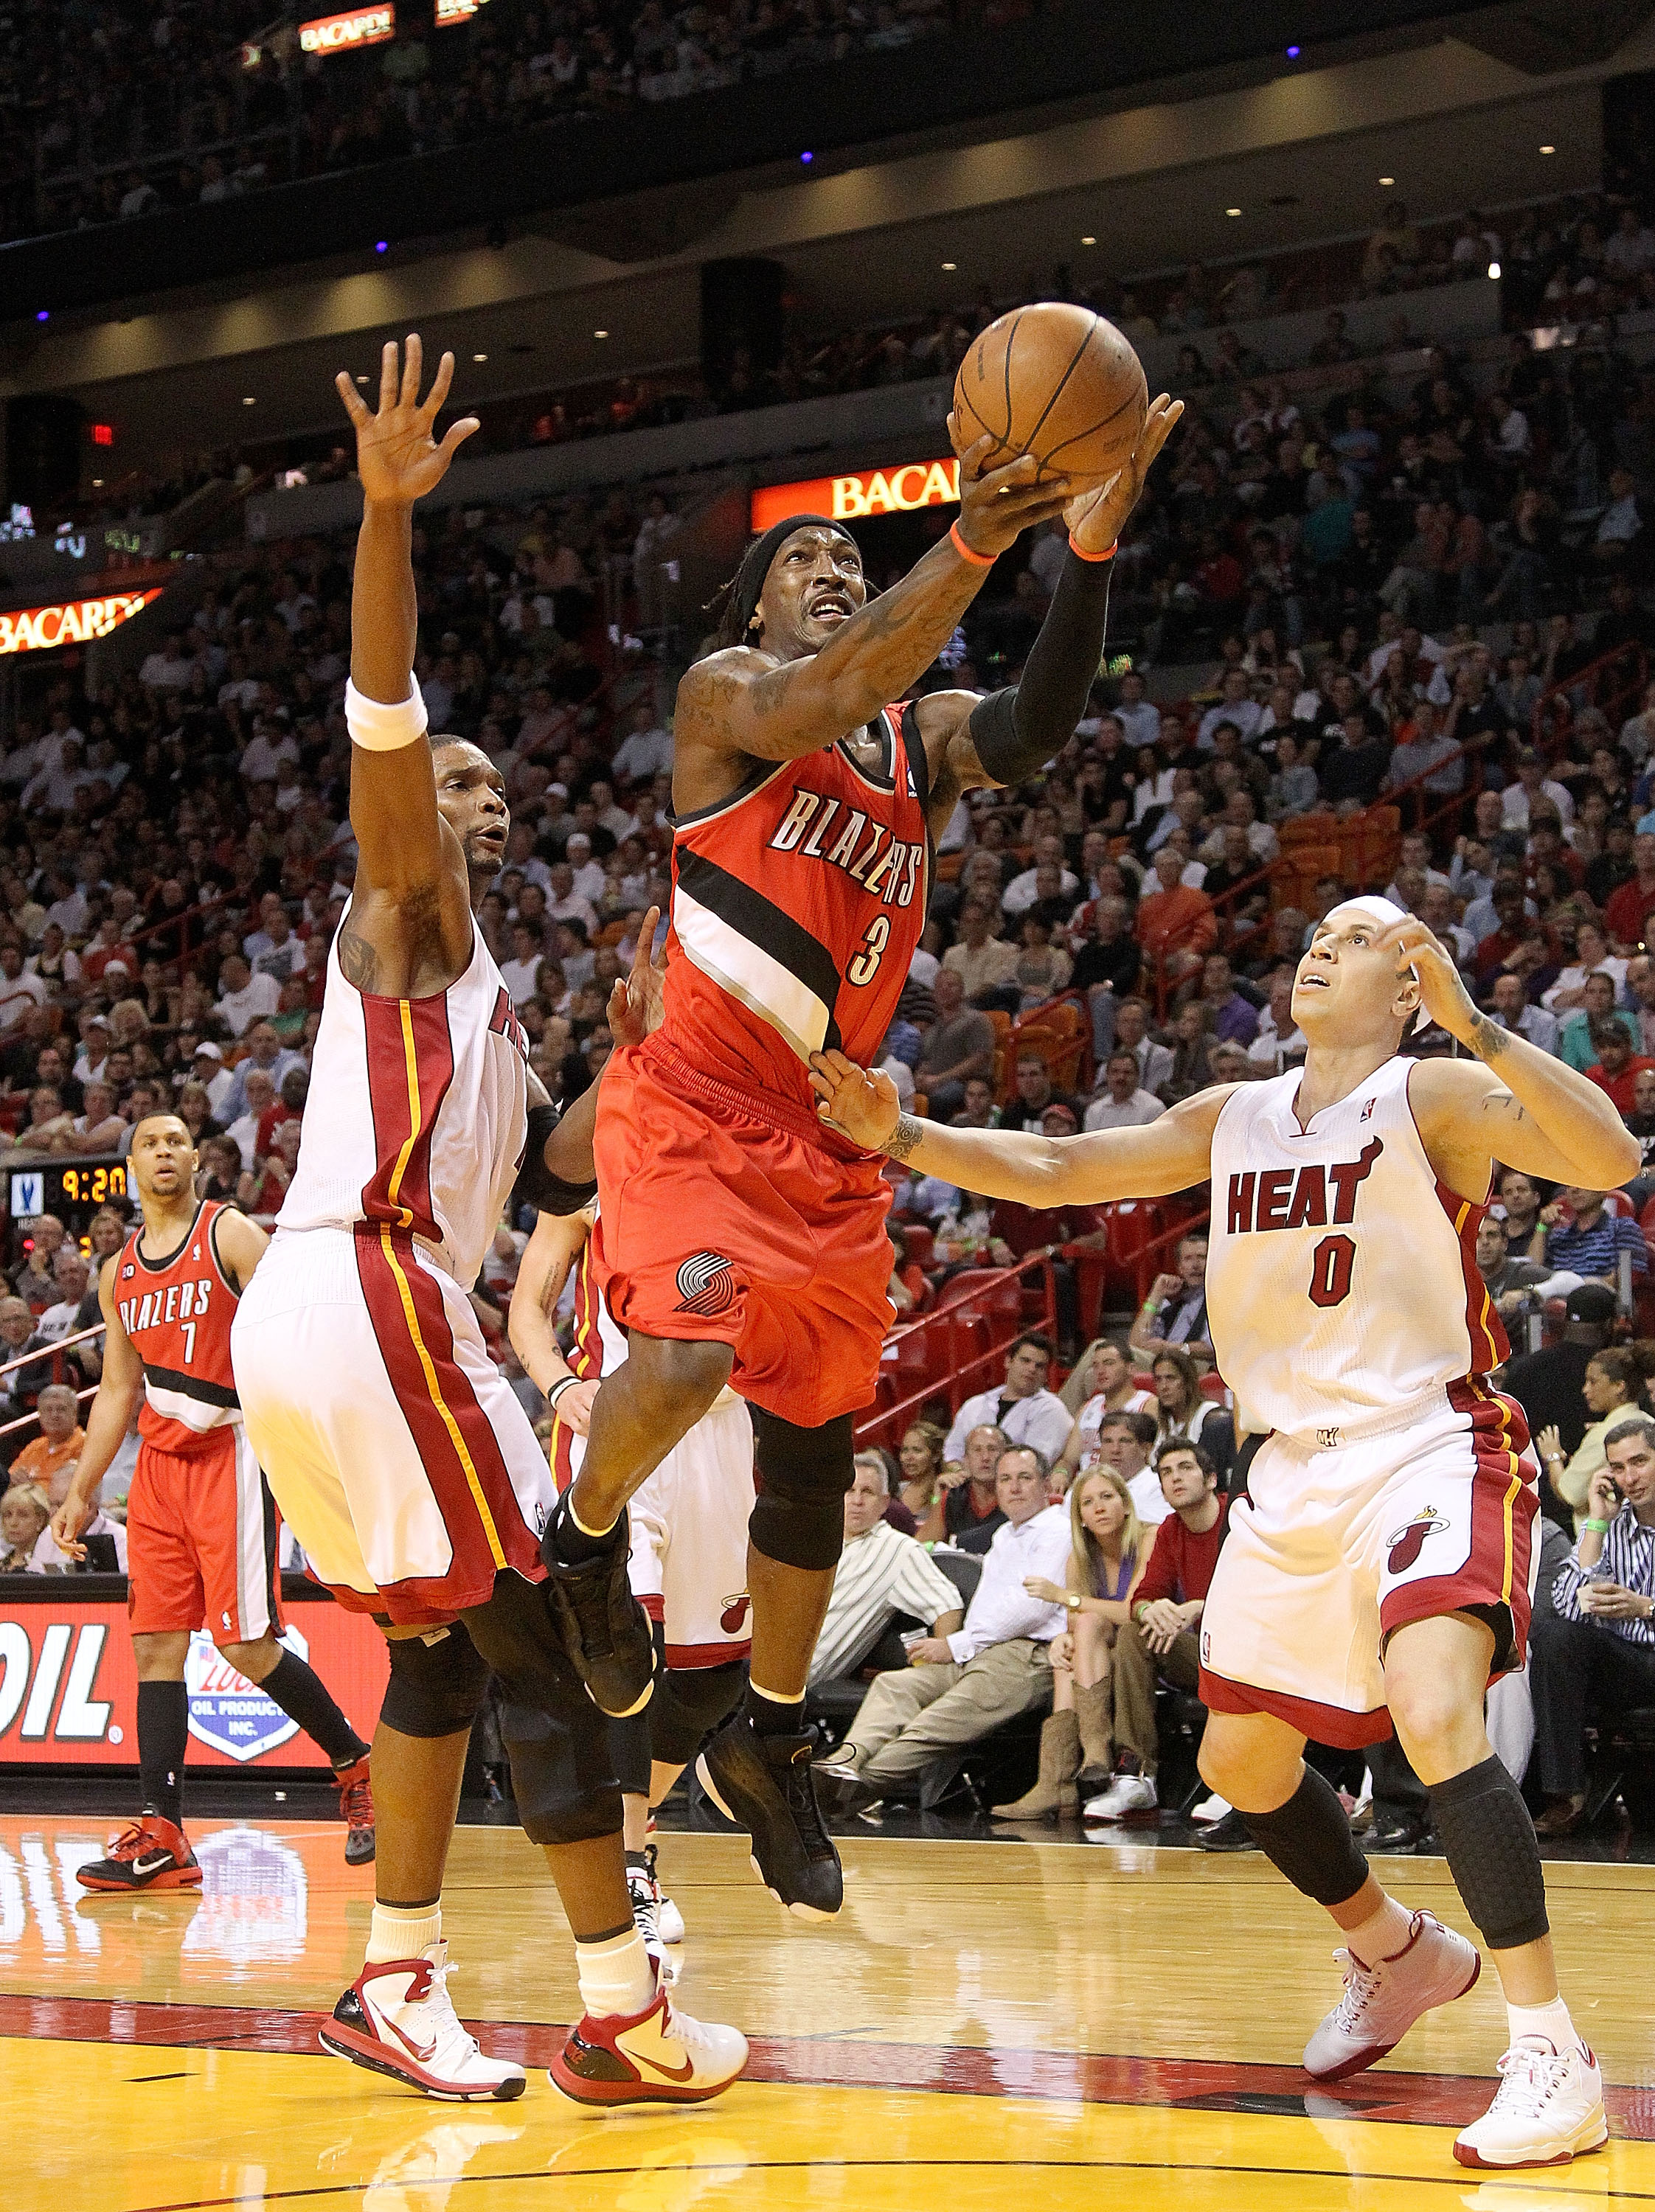 MIAMI, FL - MARCH 08: Gerald Wallace #3 of the Portland Trail Blazers splits through Chris Bosh #1 and Mike Bibby #0 of the Miami Heat during a game at American Airlines Arena on March 8, 2011 in Miami, Florida. NOTE TO USER: User expressly acknowledges a